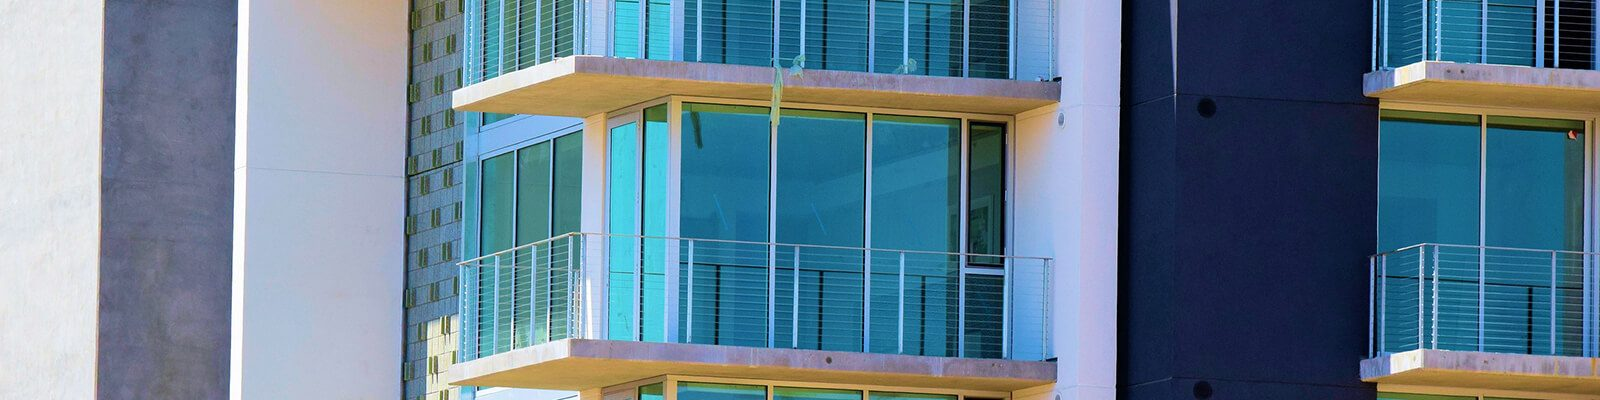 Commercial Windows in Northbrook Il